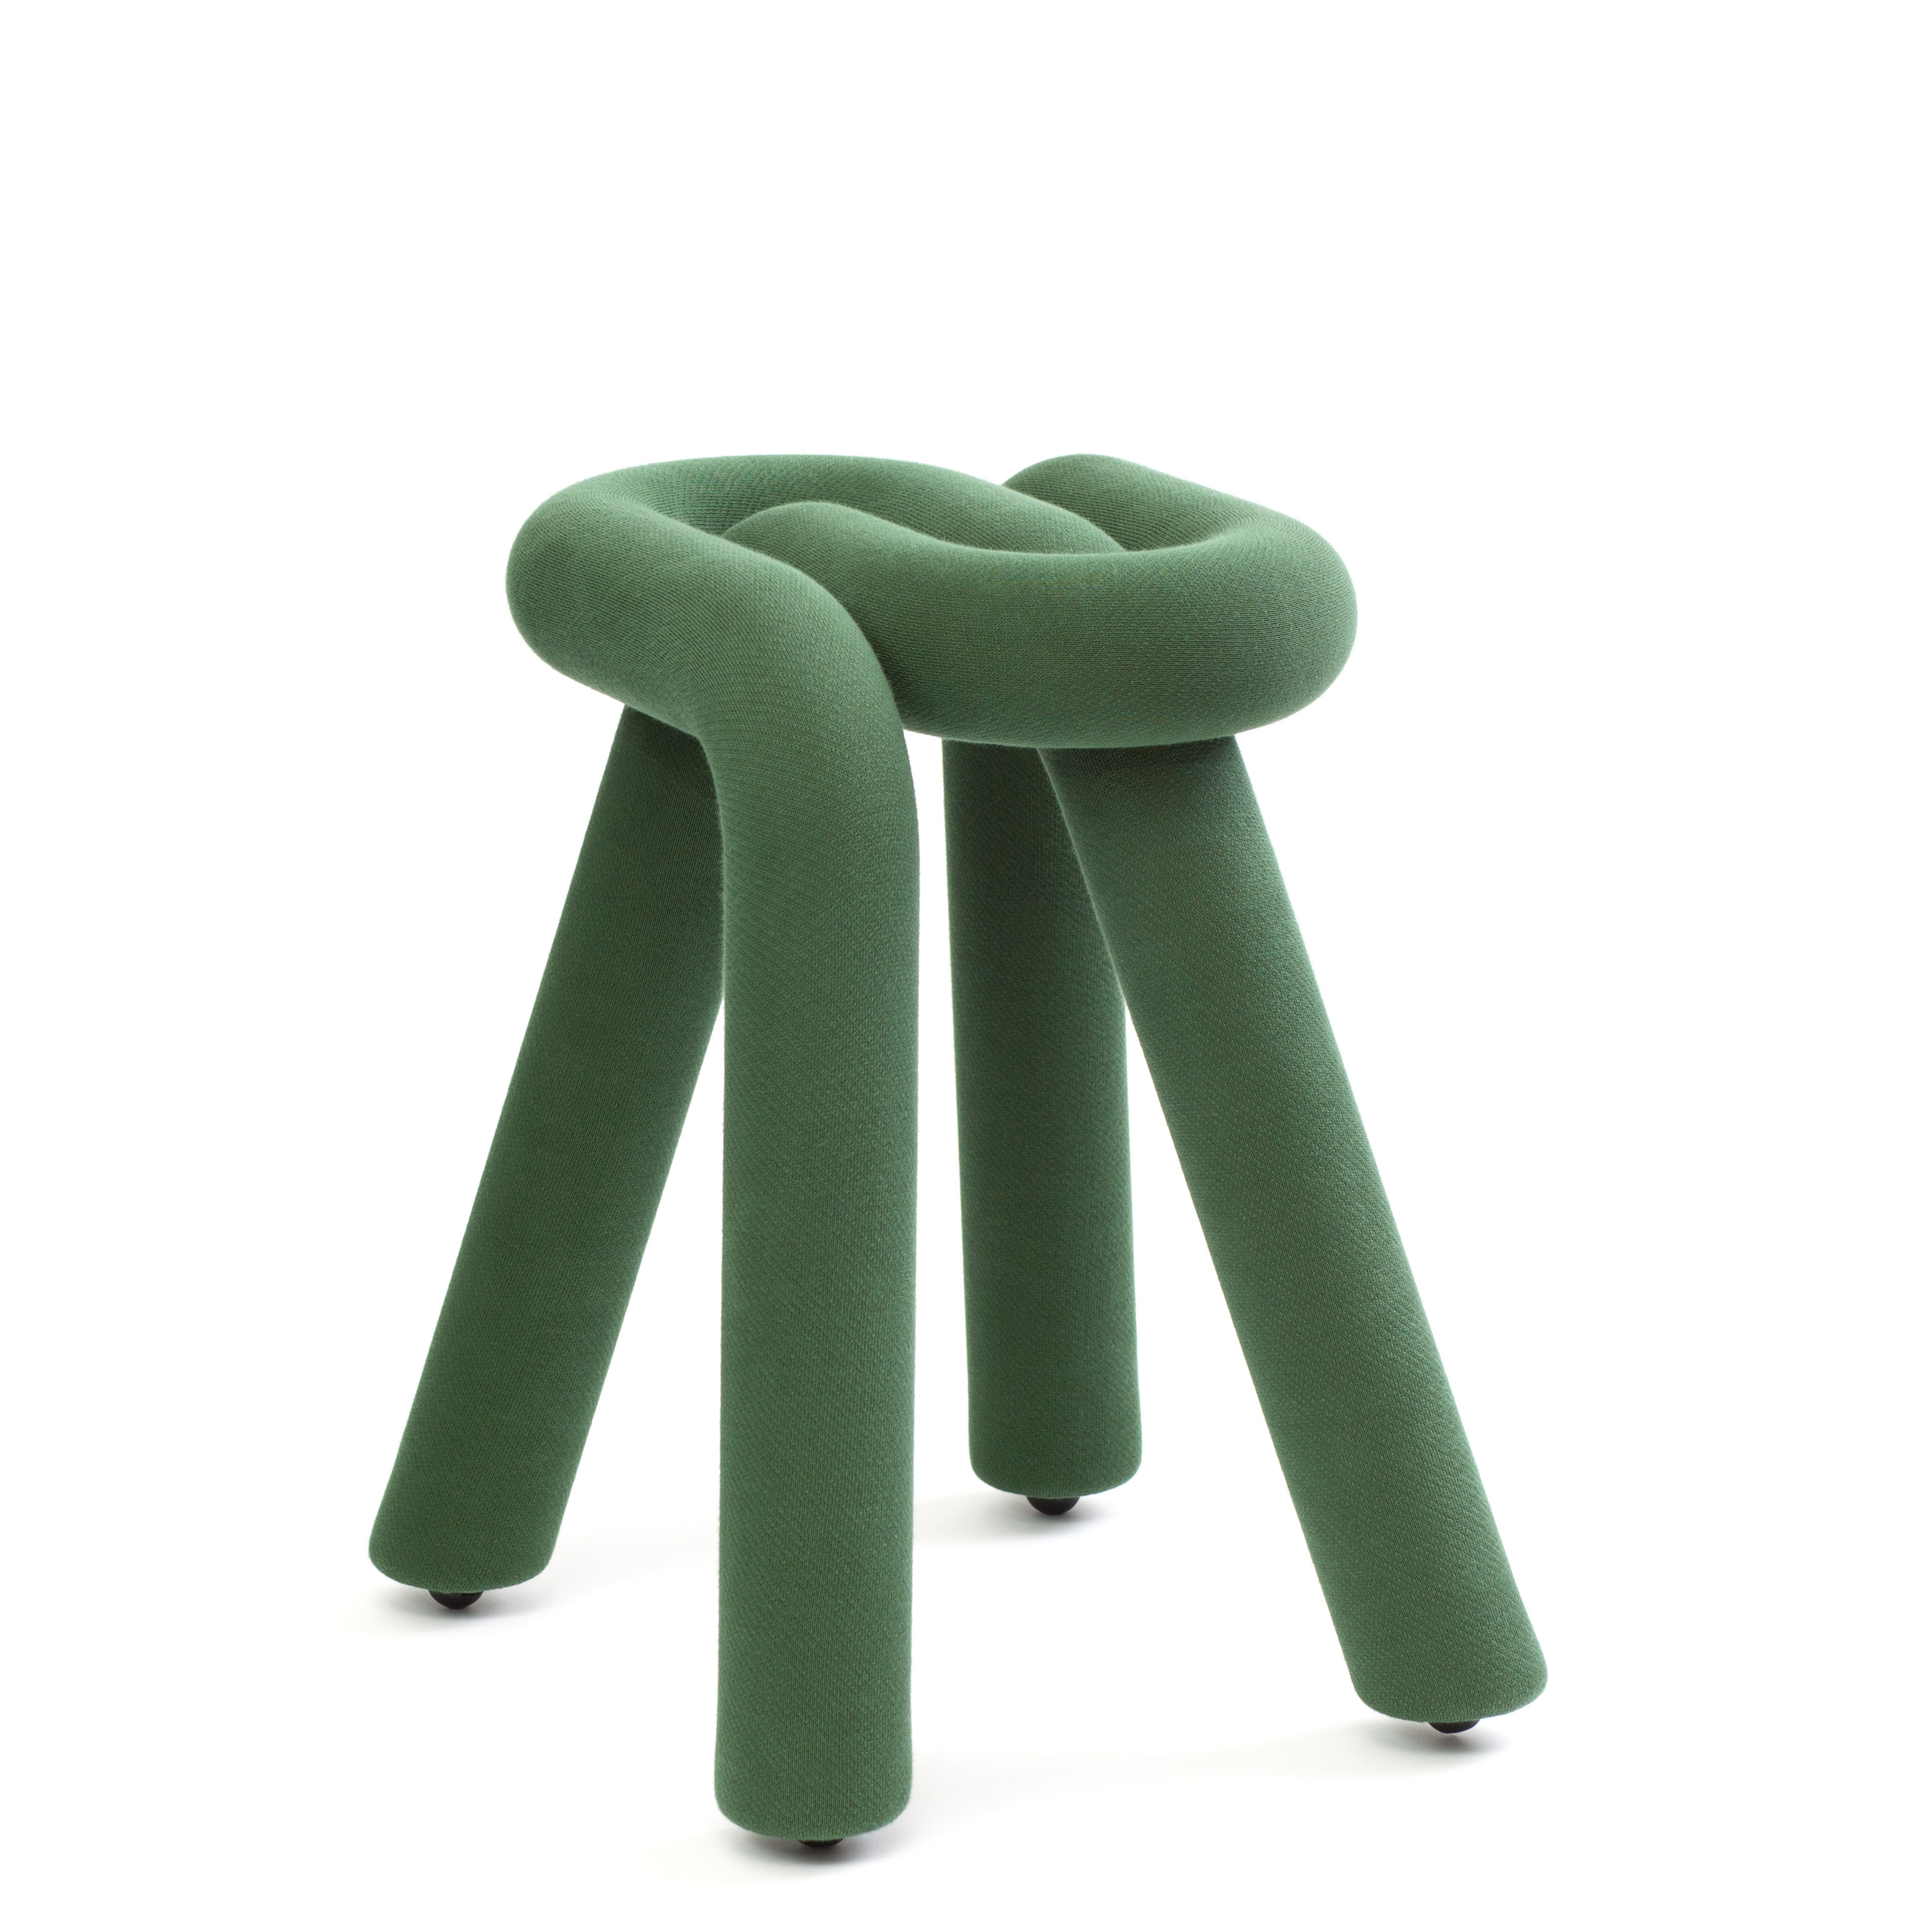 Furniture - Stools - Bold Stool - / Padded by Moustache - Forest green - Fabric, Polyurethane foam, Steel